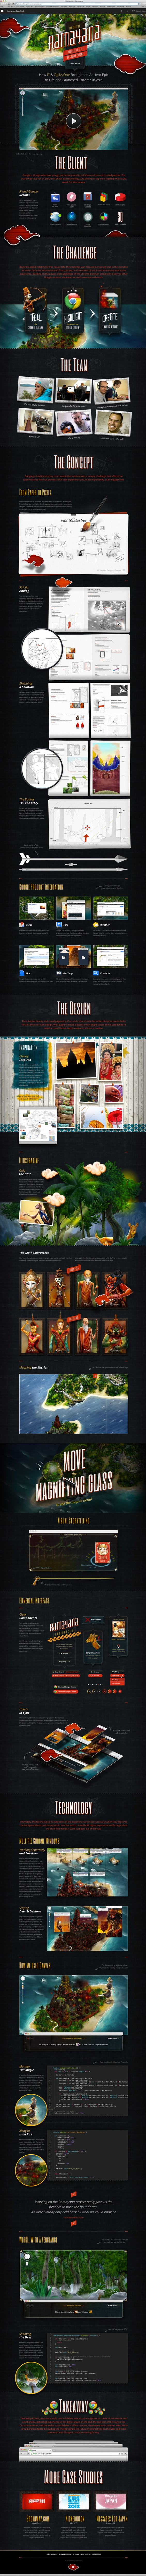 Love this crazy-detailed case by Fantasy Interactive and OgilvyOne